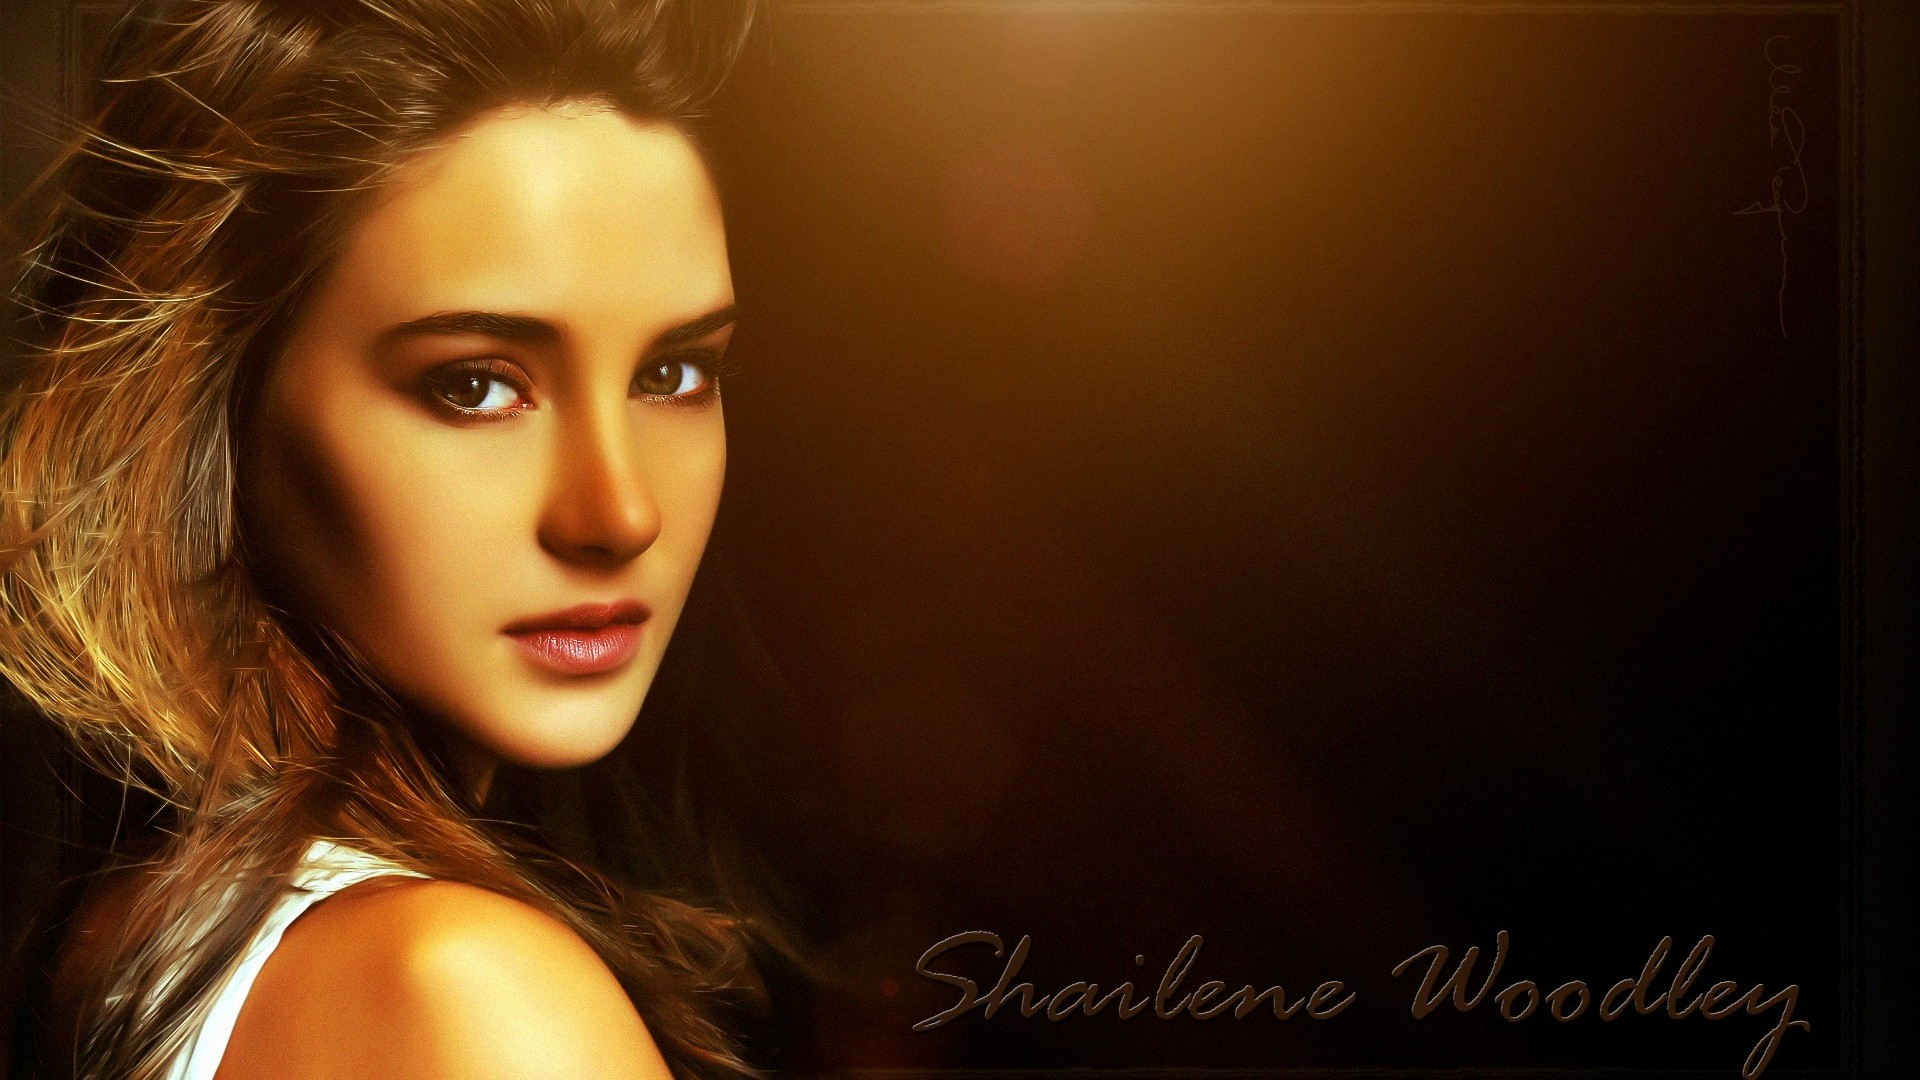 Shailene woodley hd wallpapers for desktop download shailene woodley high definition wallpapers thecheapjerseys Choice Image